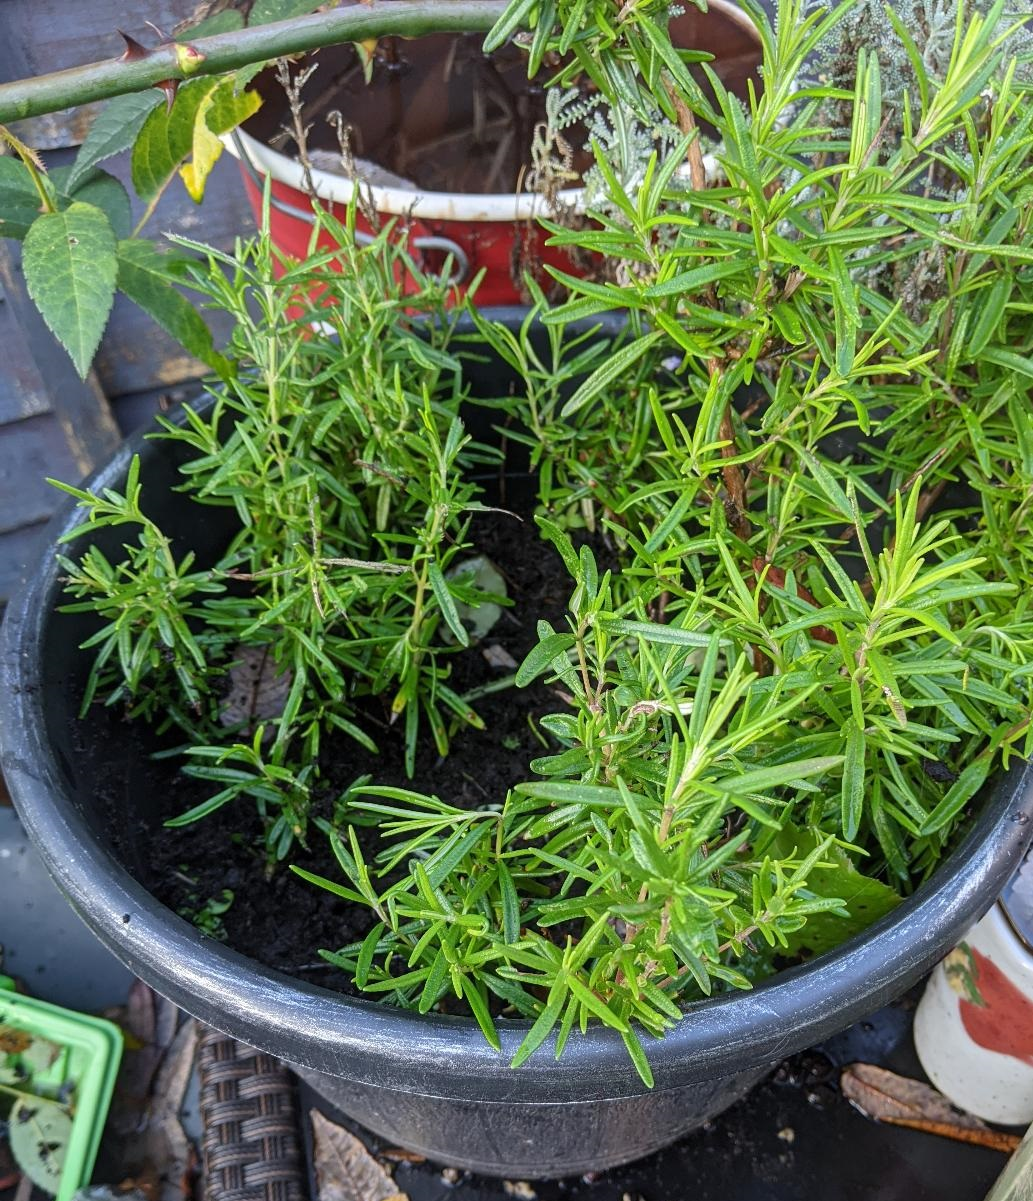 Three different rosemary cuttings